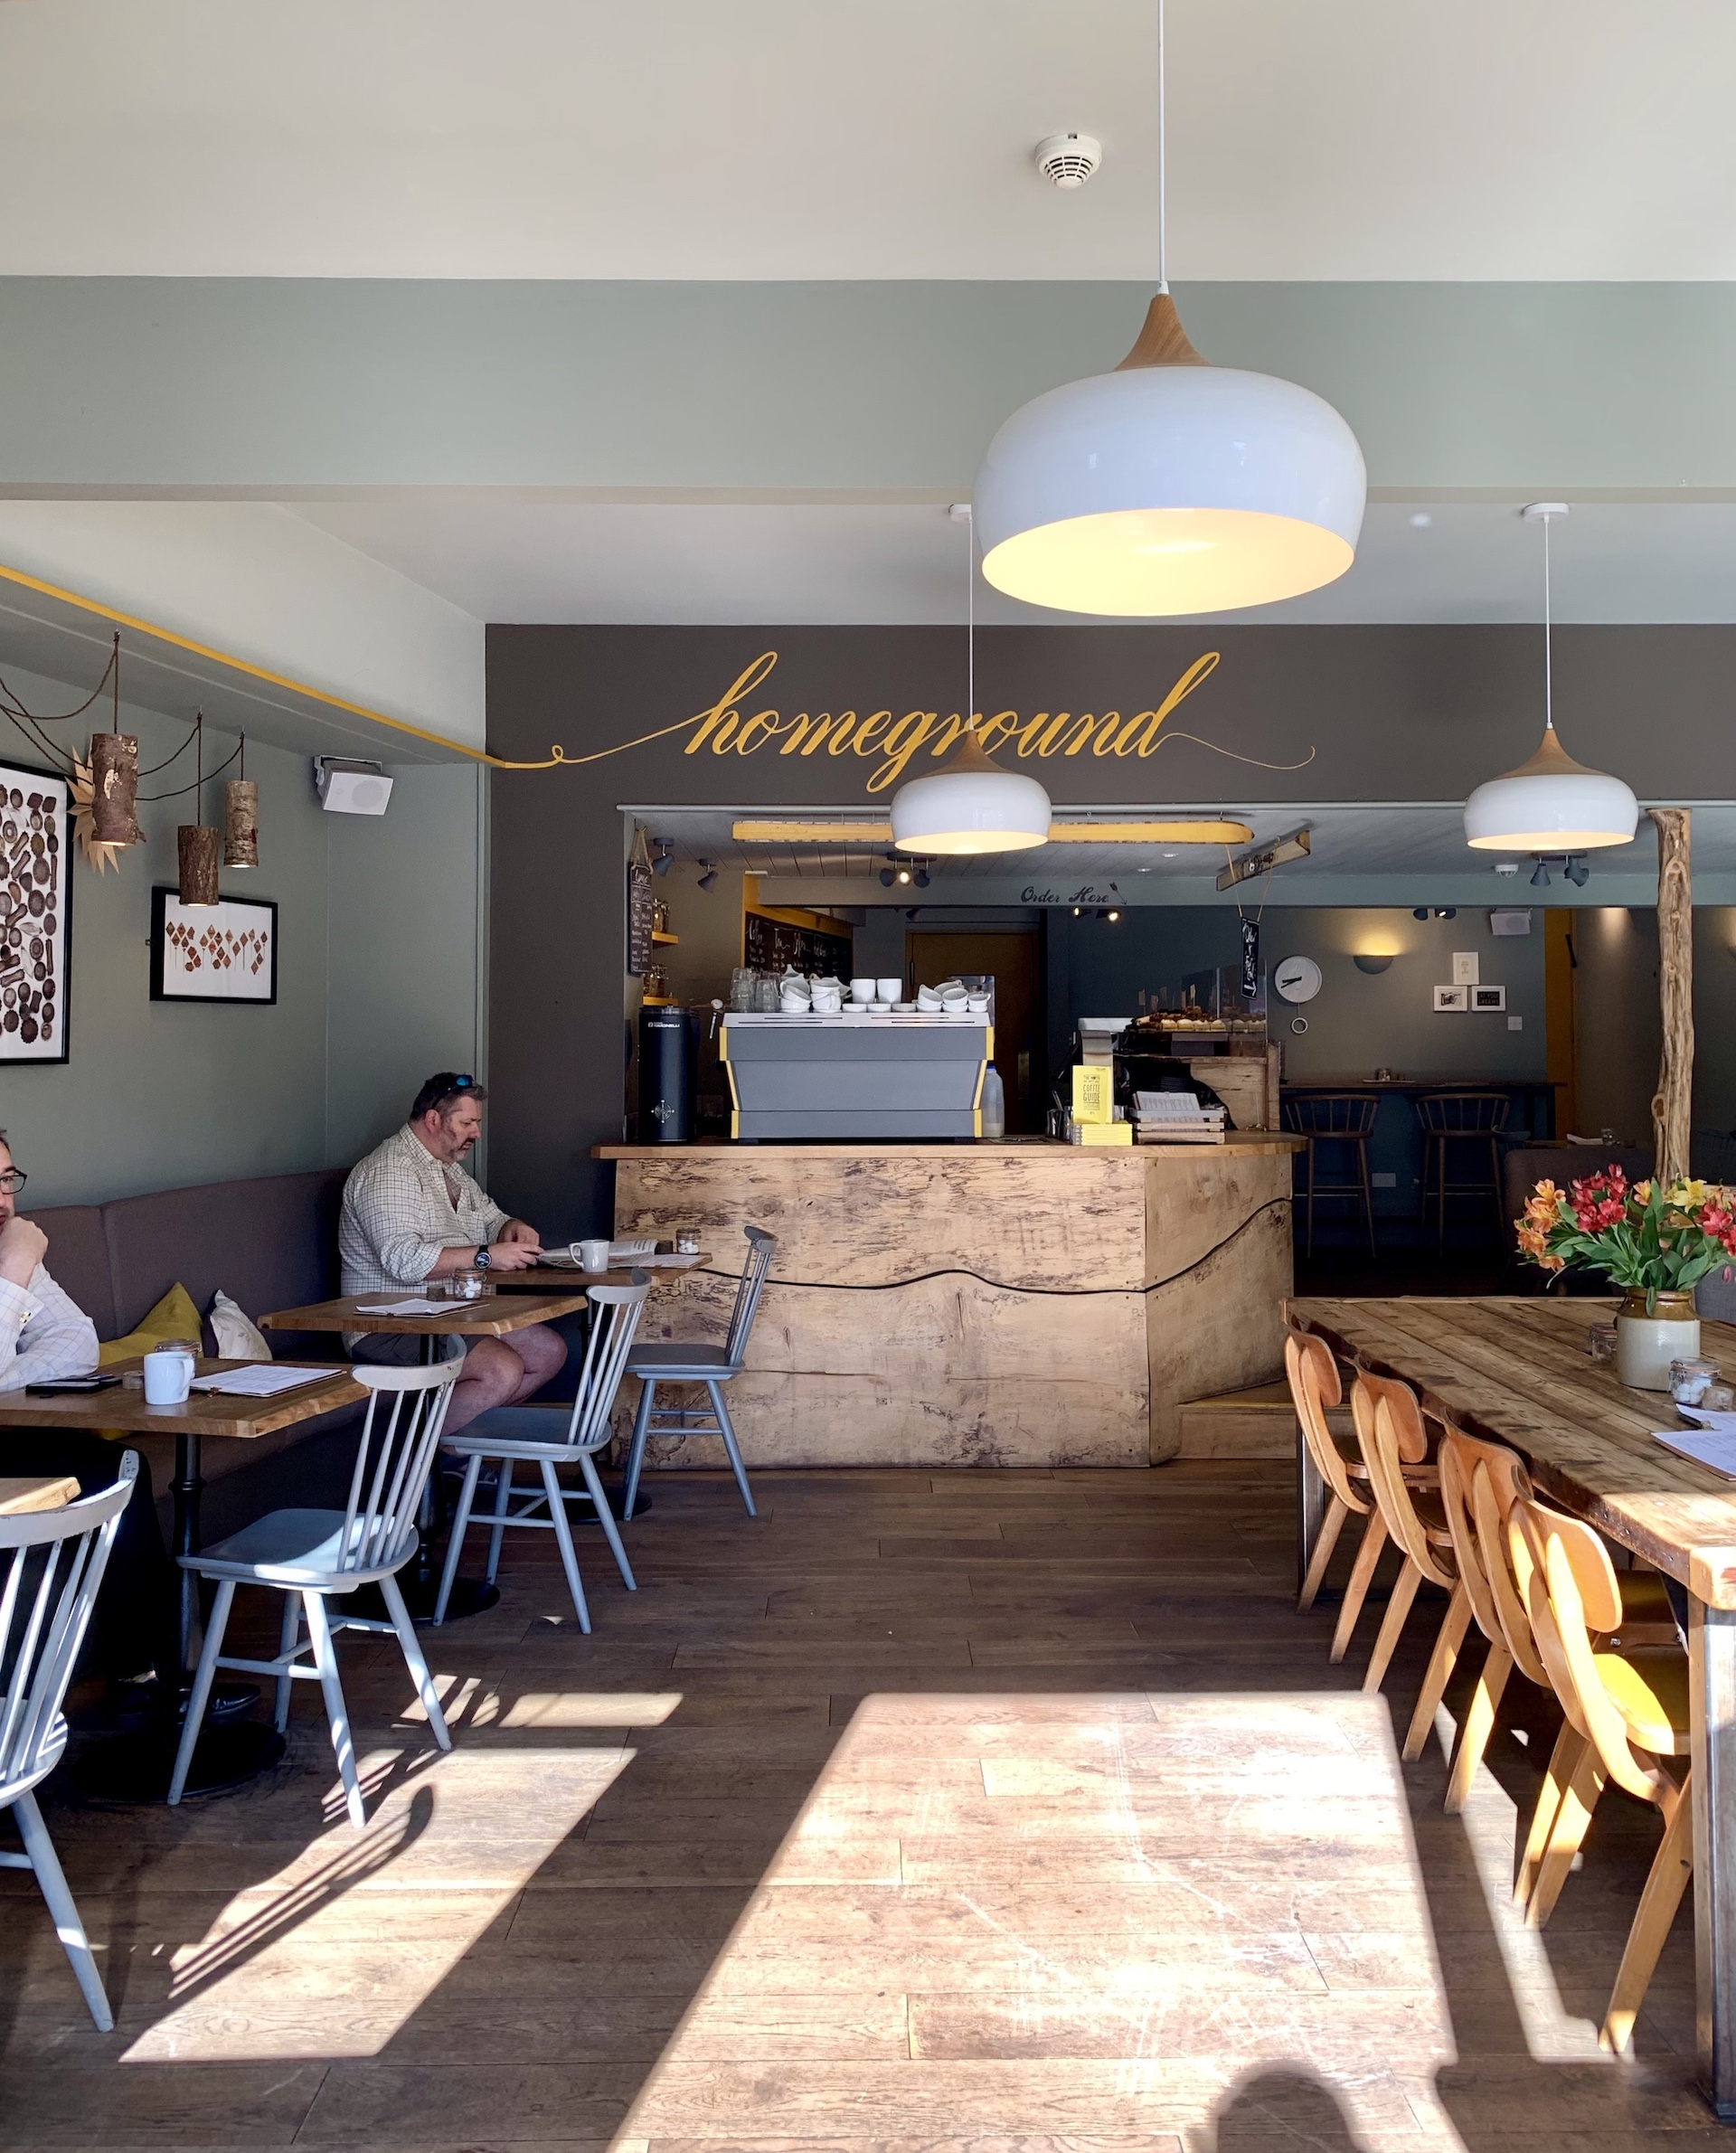 homeground-interior-copy via @carvetiicoffee